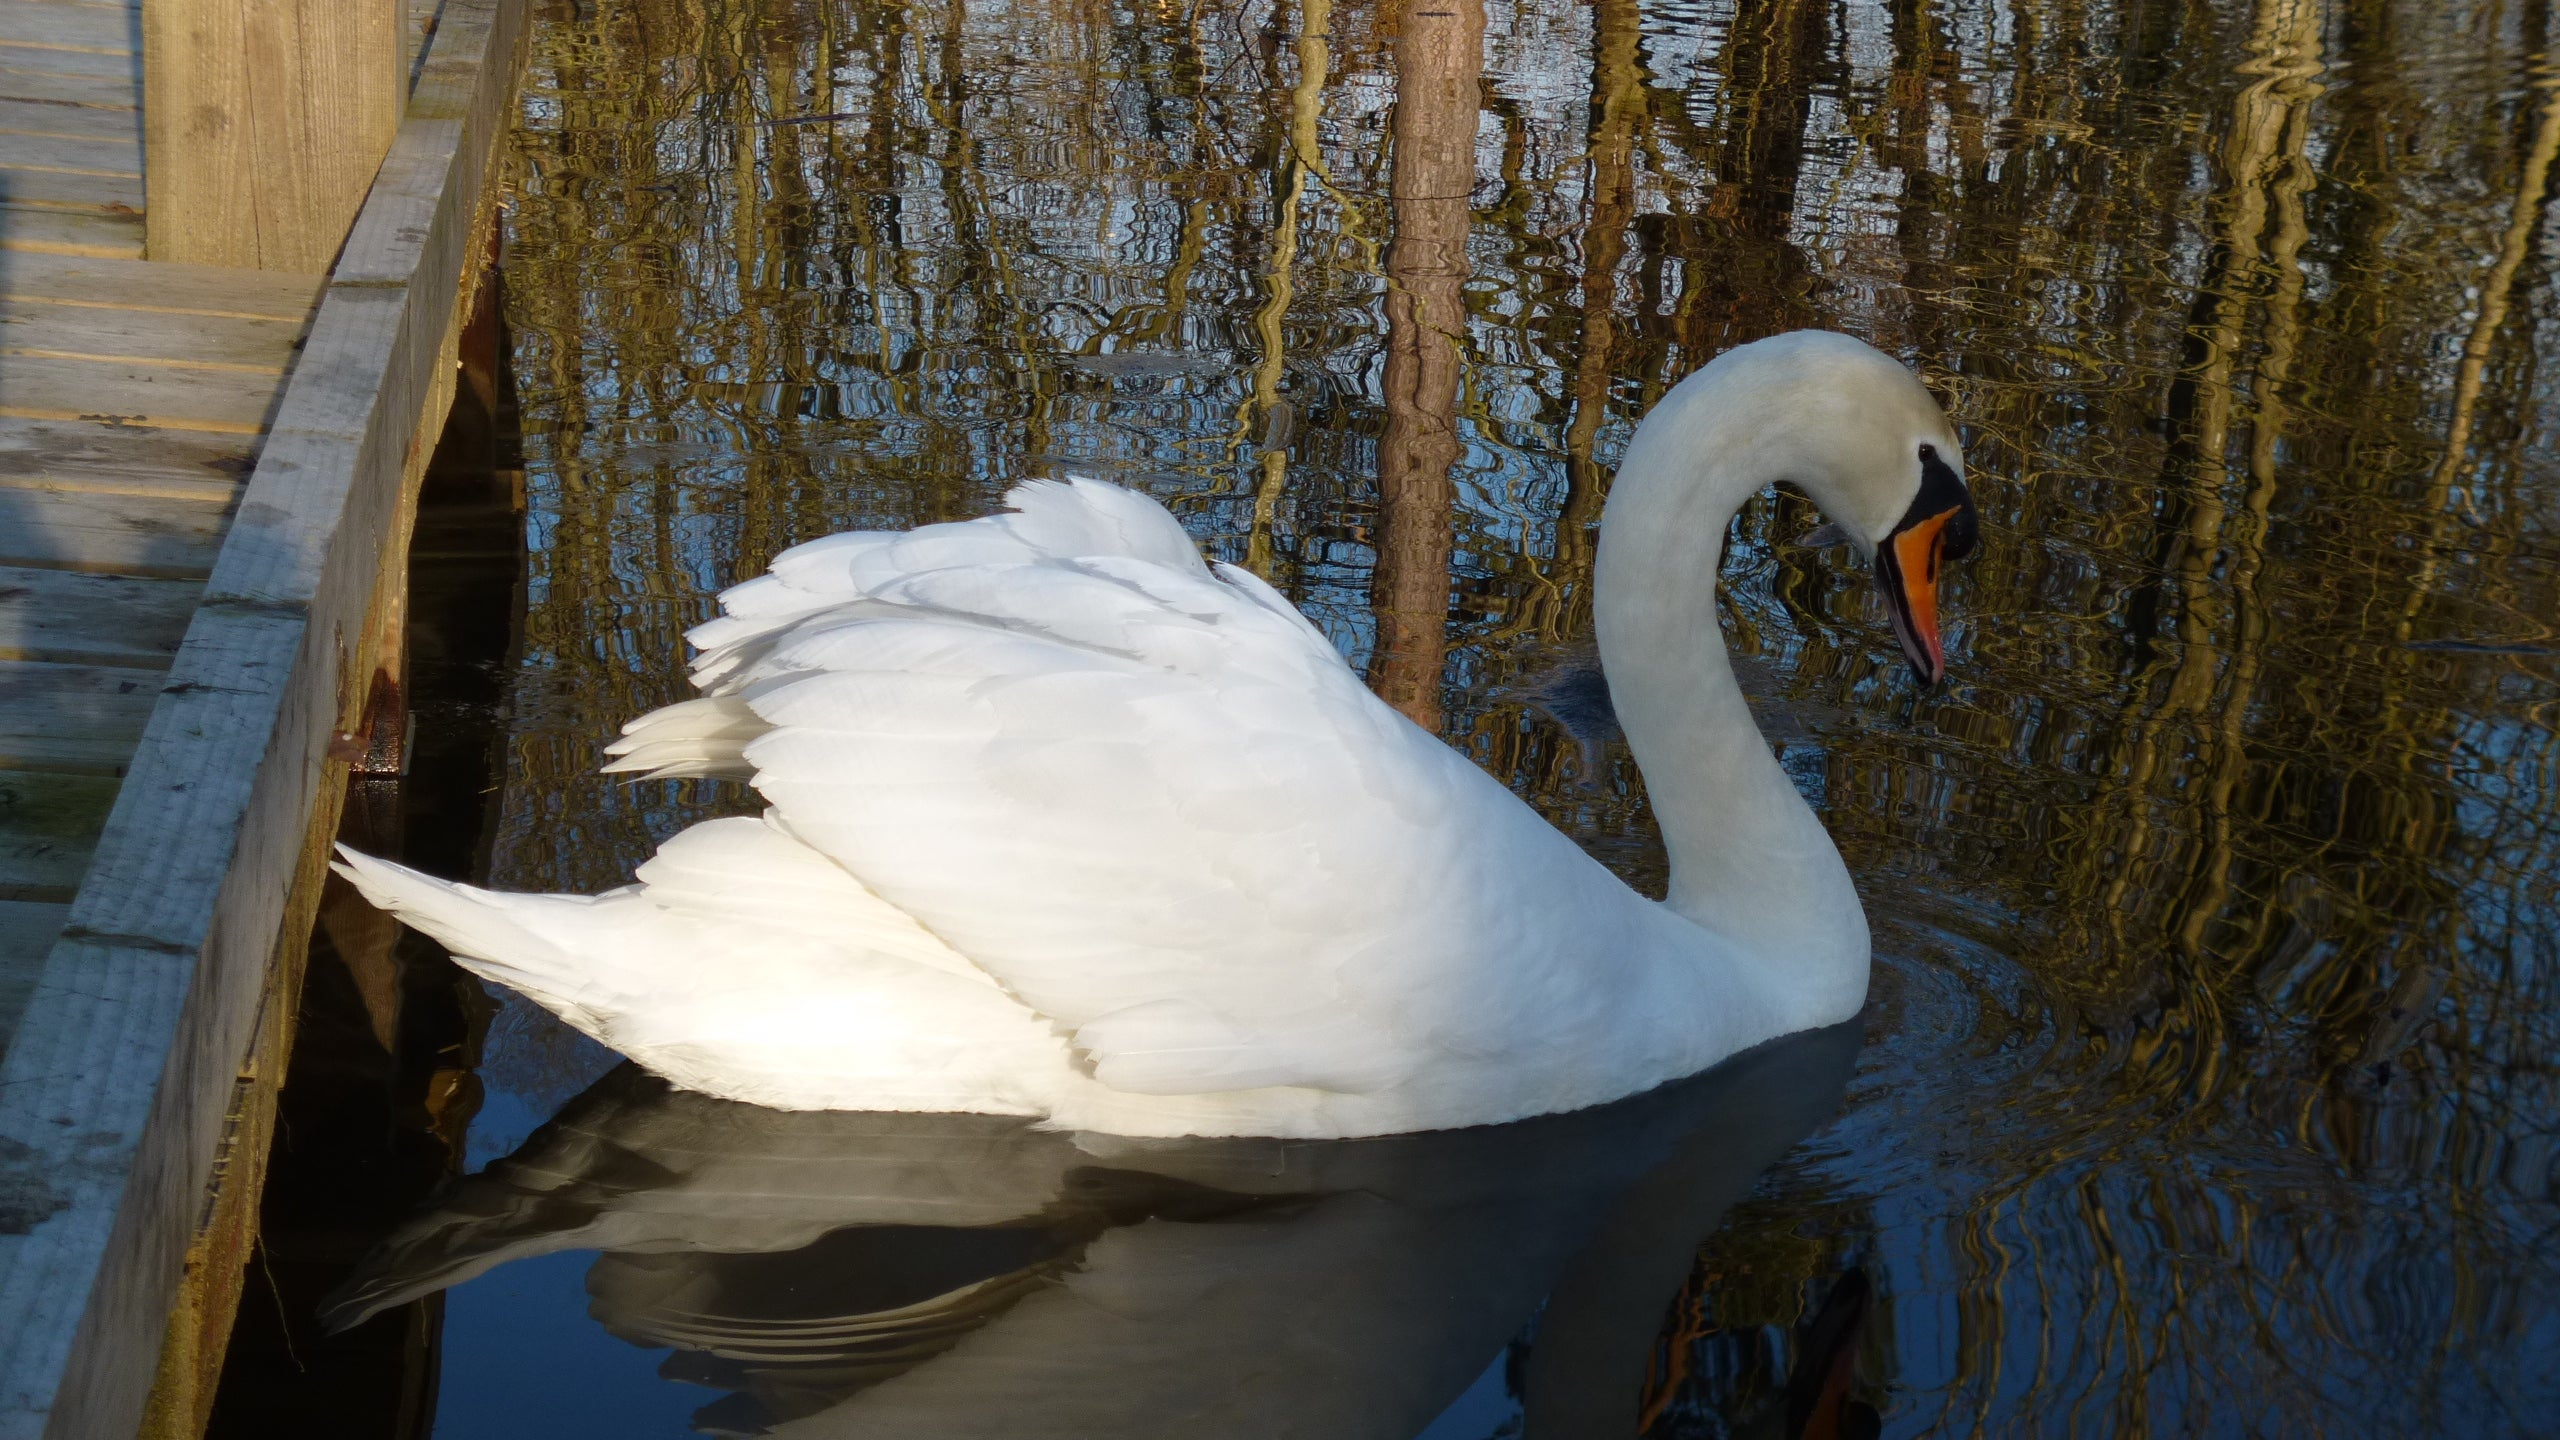 A swan in the Decoy lake, with a background of reflected trees